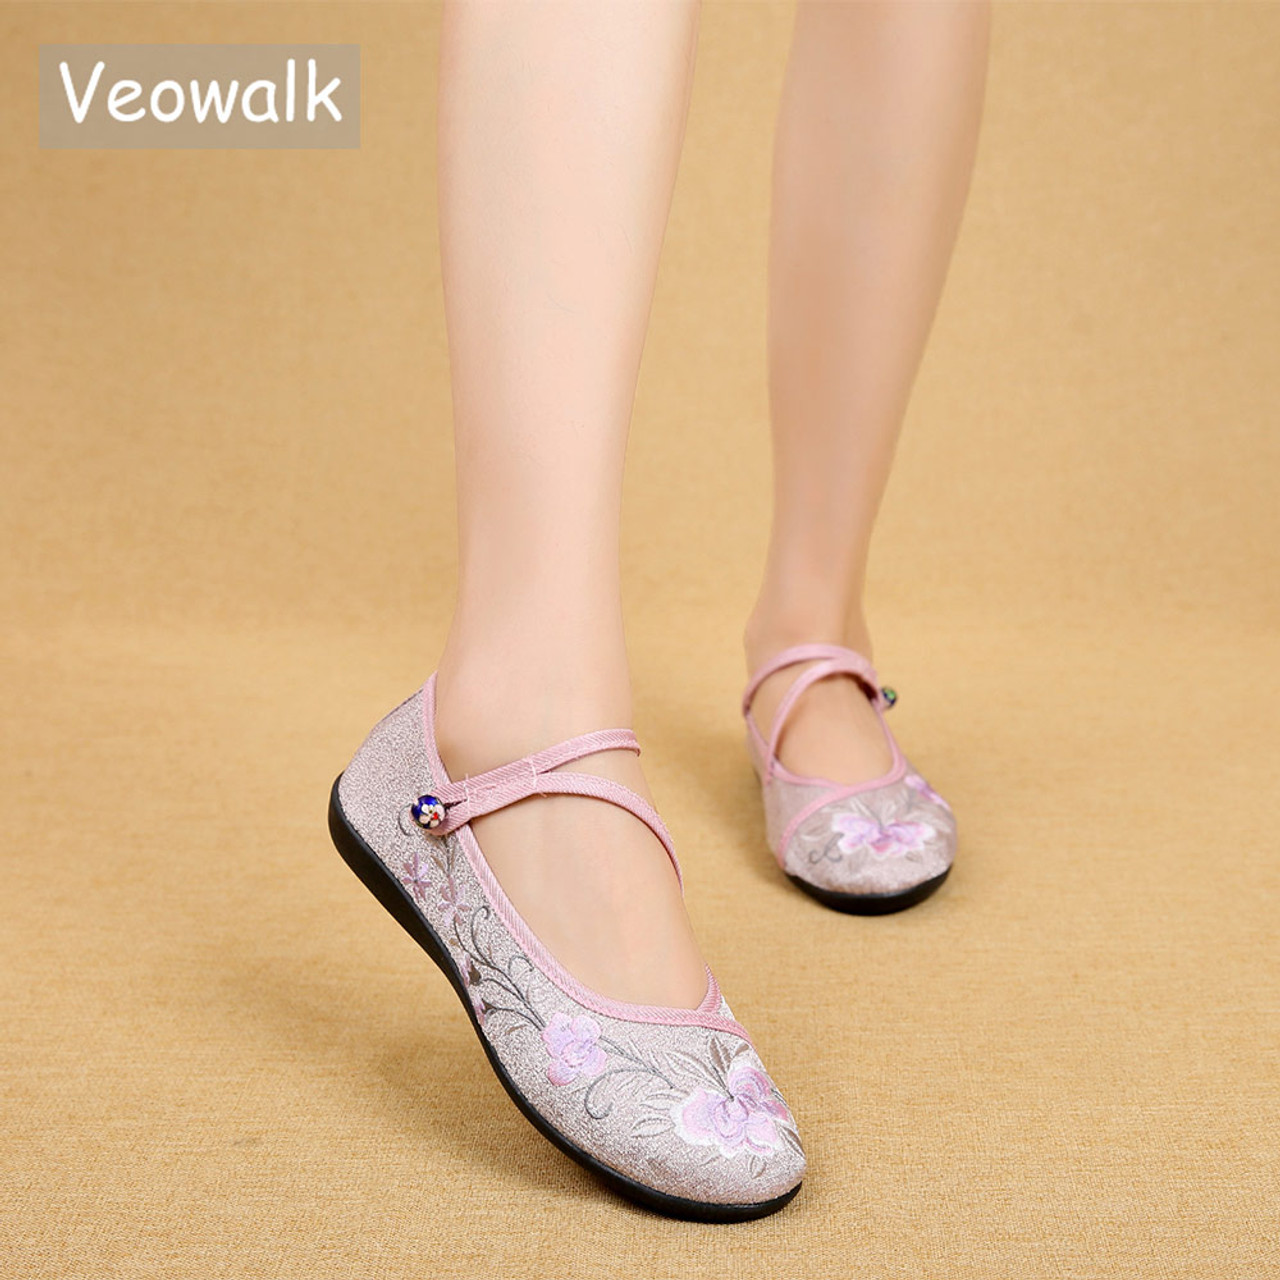 938790edc6bb3 Veowalk Chinese Vintage Flower Embroidered Women Cotton Nurse Ballet Flats  Triangle Buckles Ladies Soft Foldable Comfort Shoes